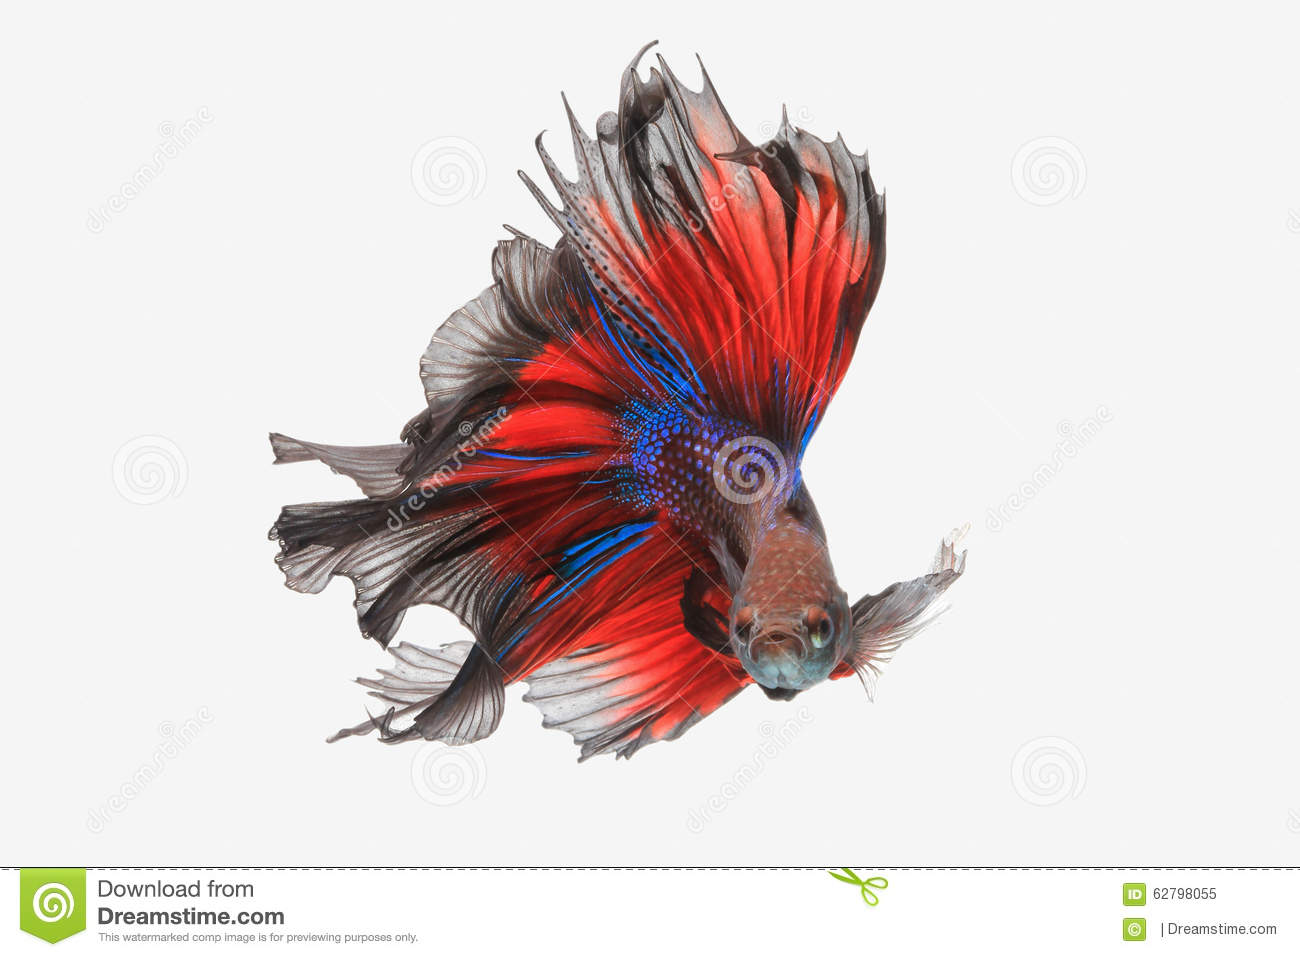 Flying betta fish stock image. Image of double, dress - 62798055